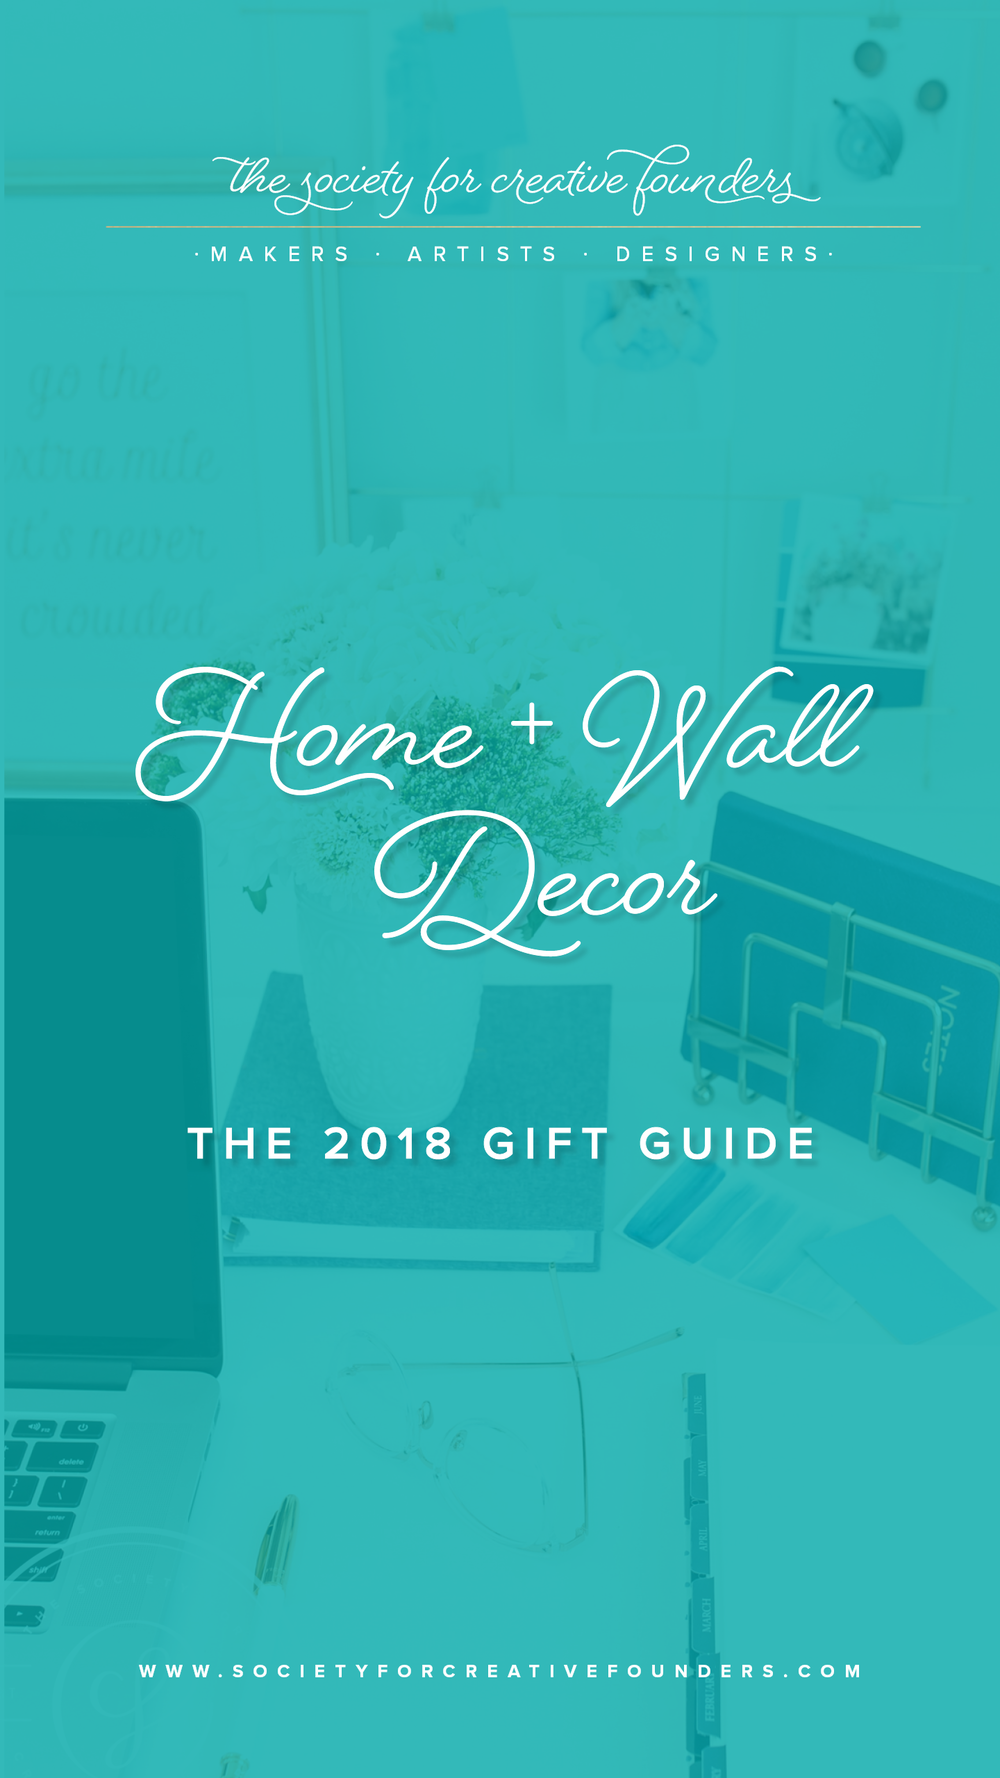 Home and Wall Decor - Creative Founders 2018 Gift Guide